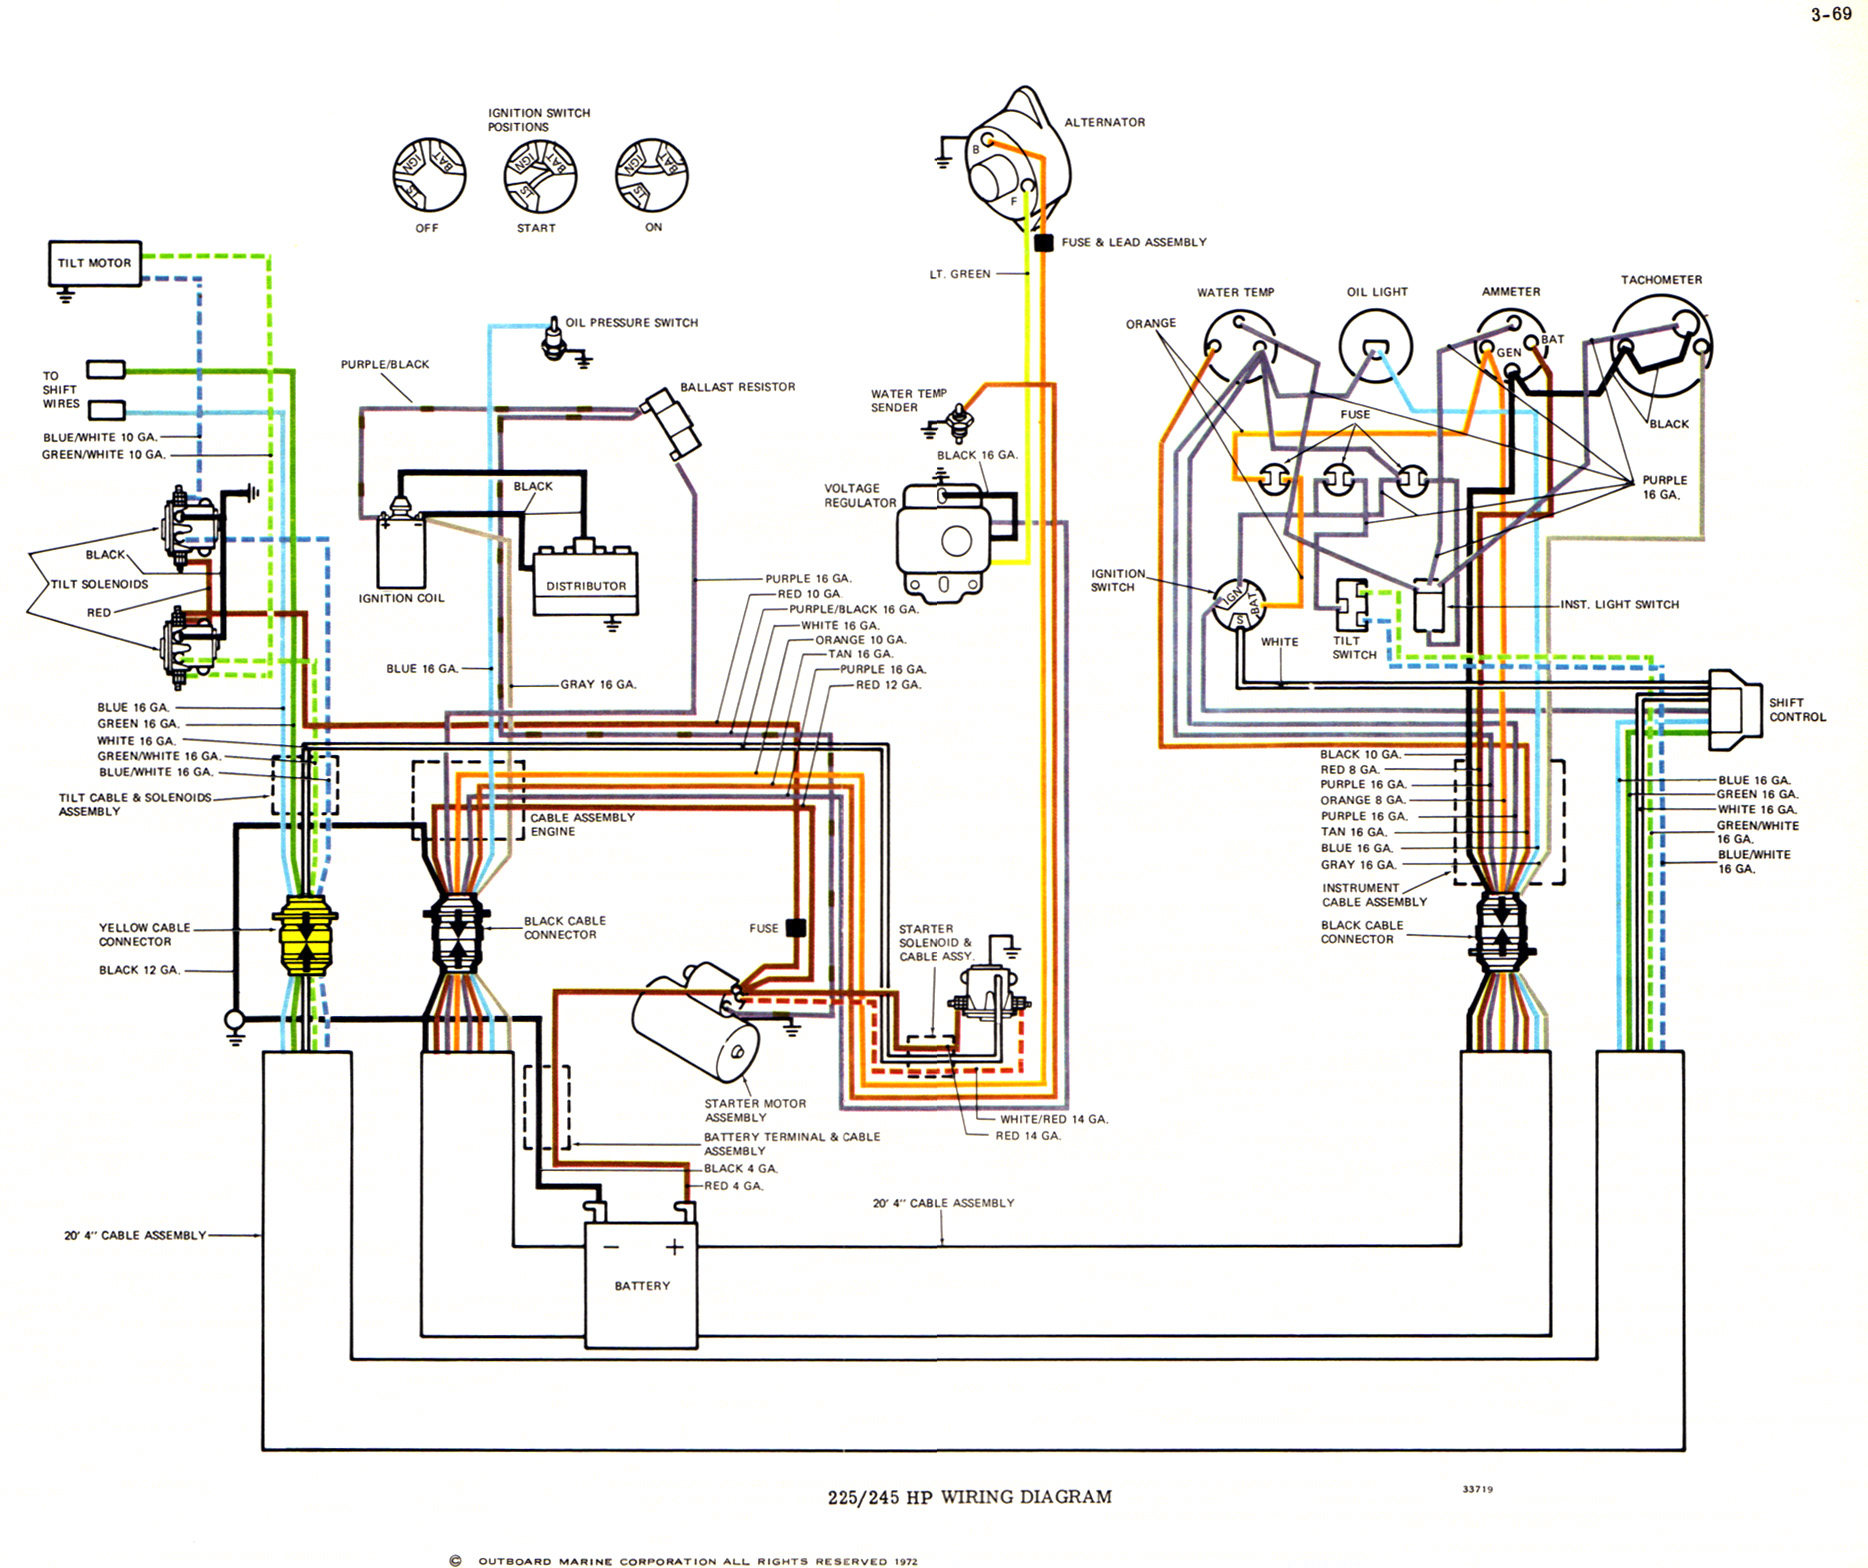 73_OMC_V8_all_big omc wiring diagram basic boat wiring schematic \u2022 wiring diagrams arco alternator wiring diagram at nearapp.co